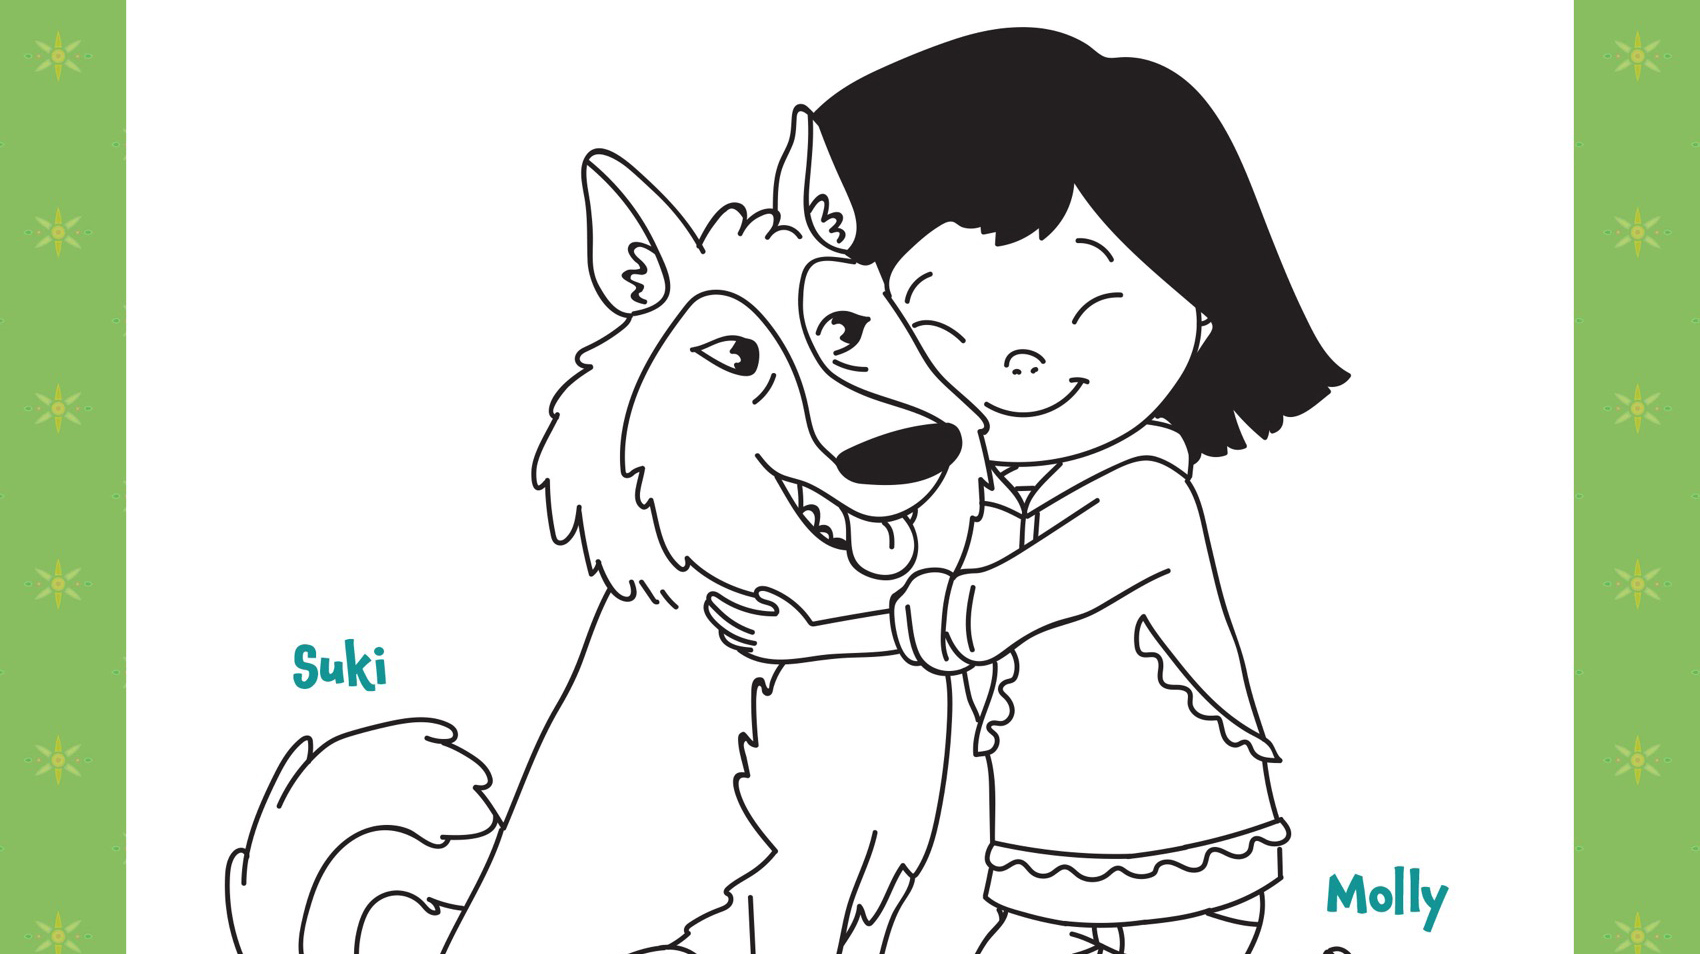 Molly And Suki Coloring Page Kids Coloring Pbs Kids For